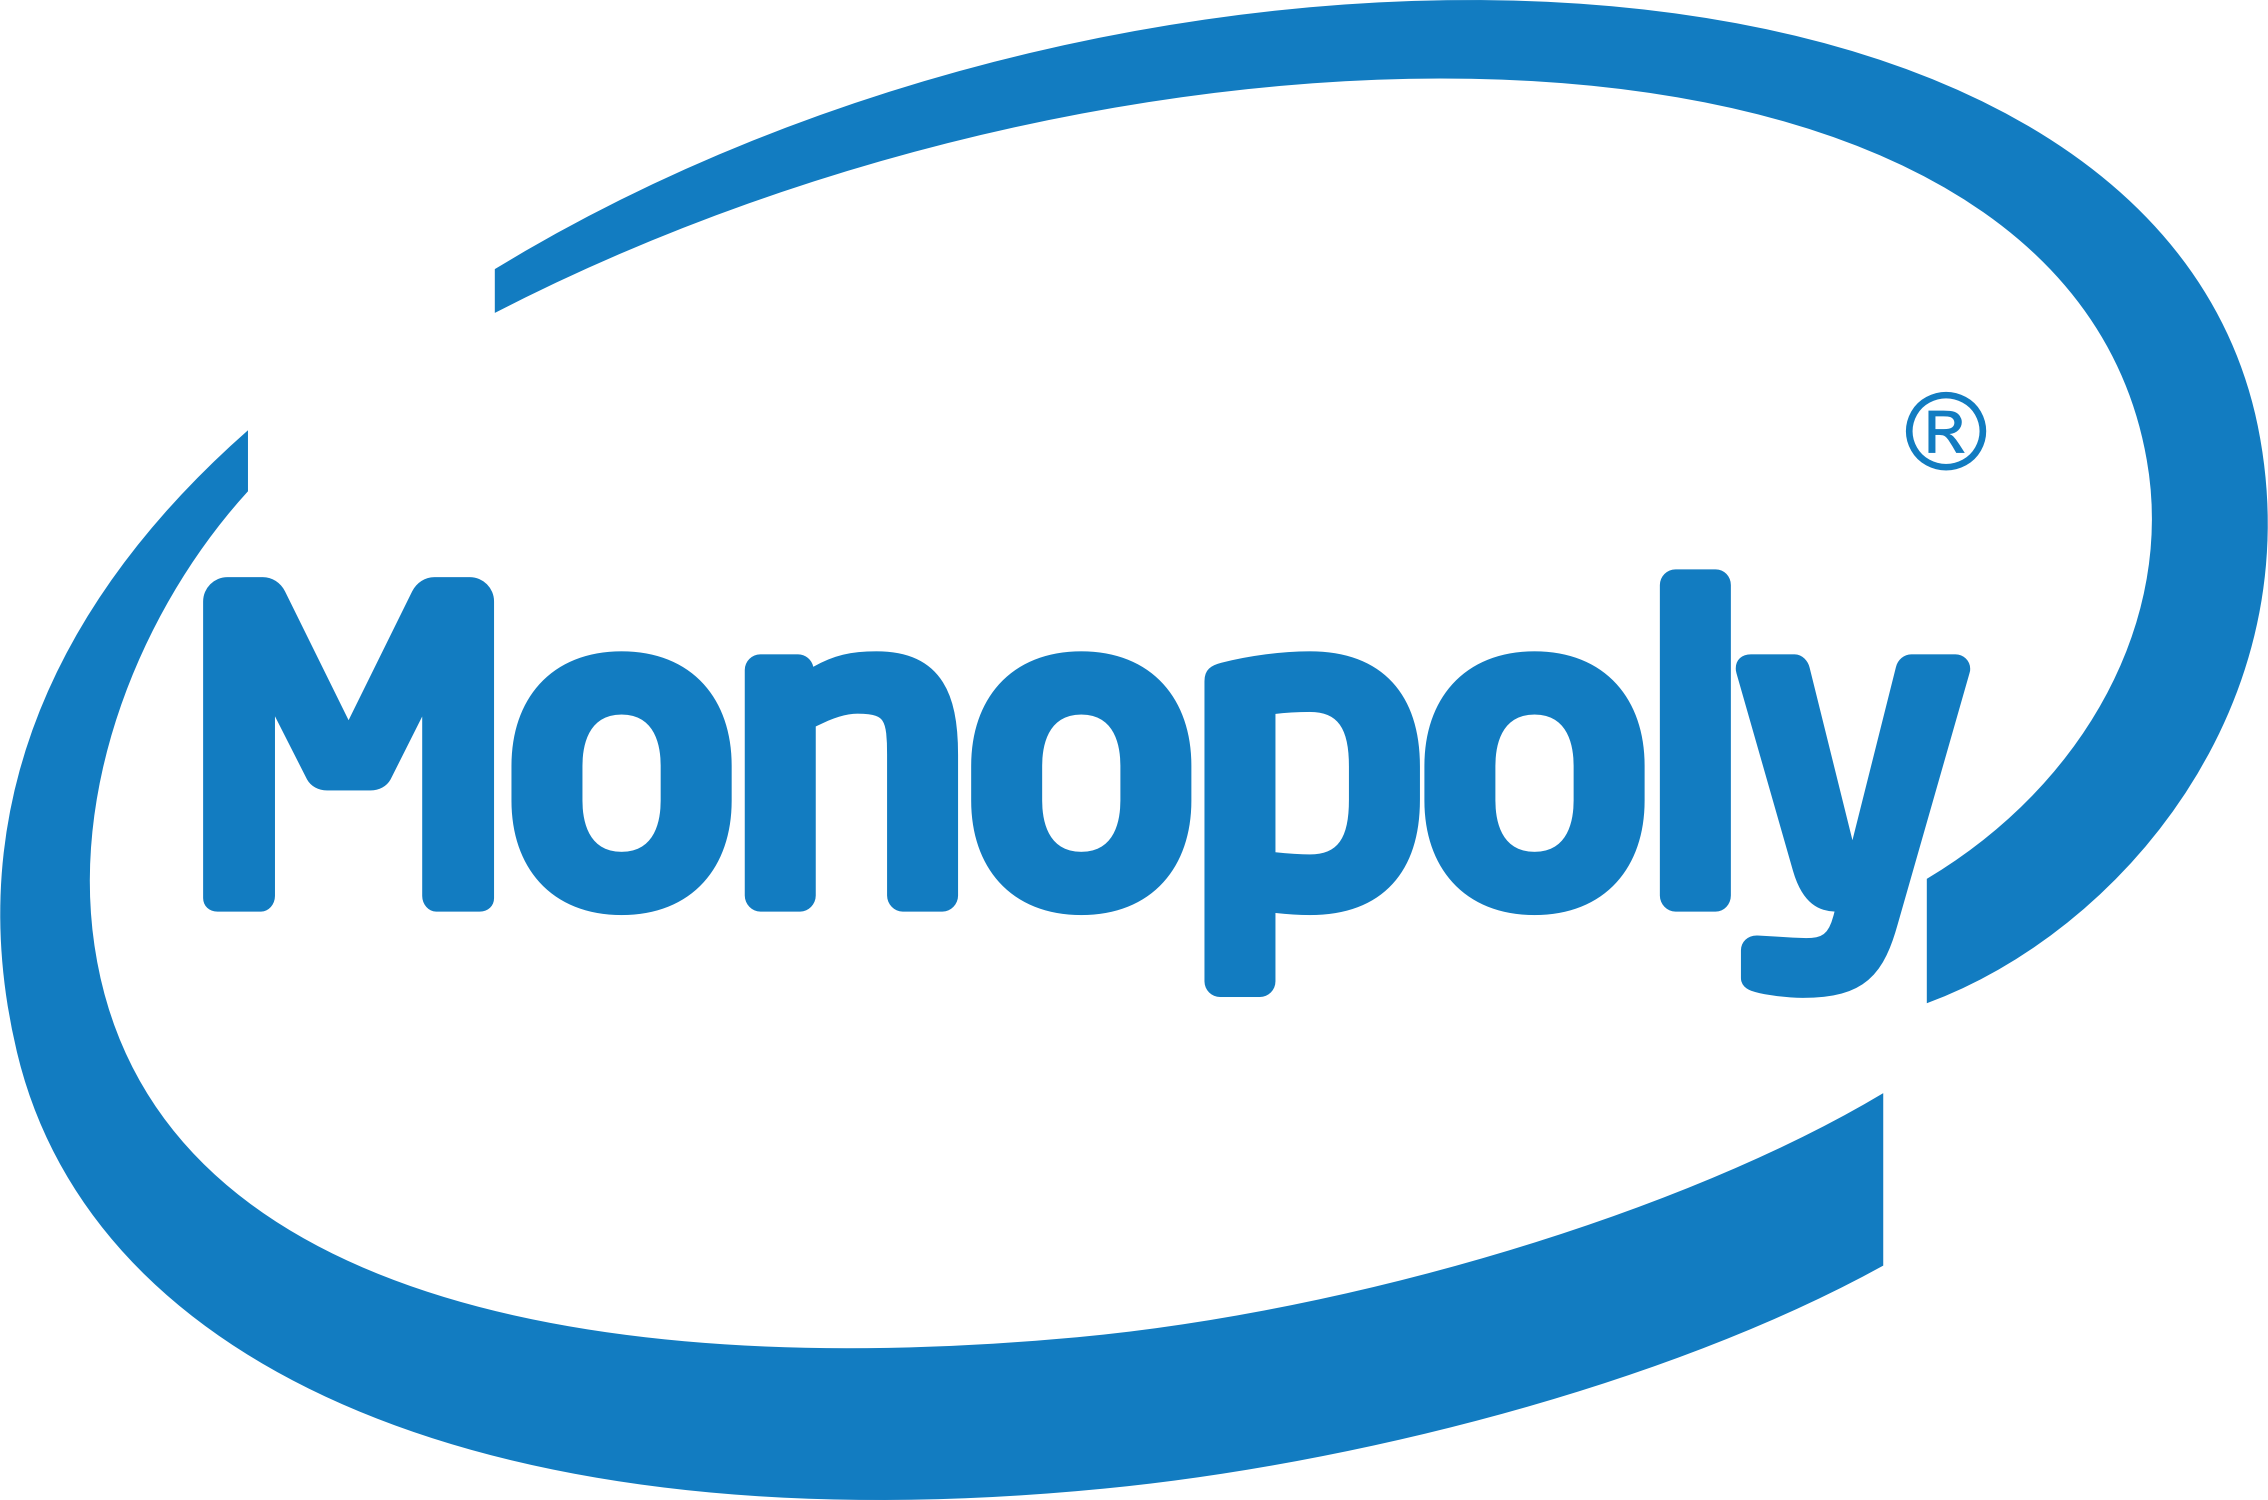 https://openclipart.org/image/2400px/svg_to_png/225415/Monopoly.png